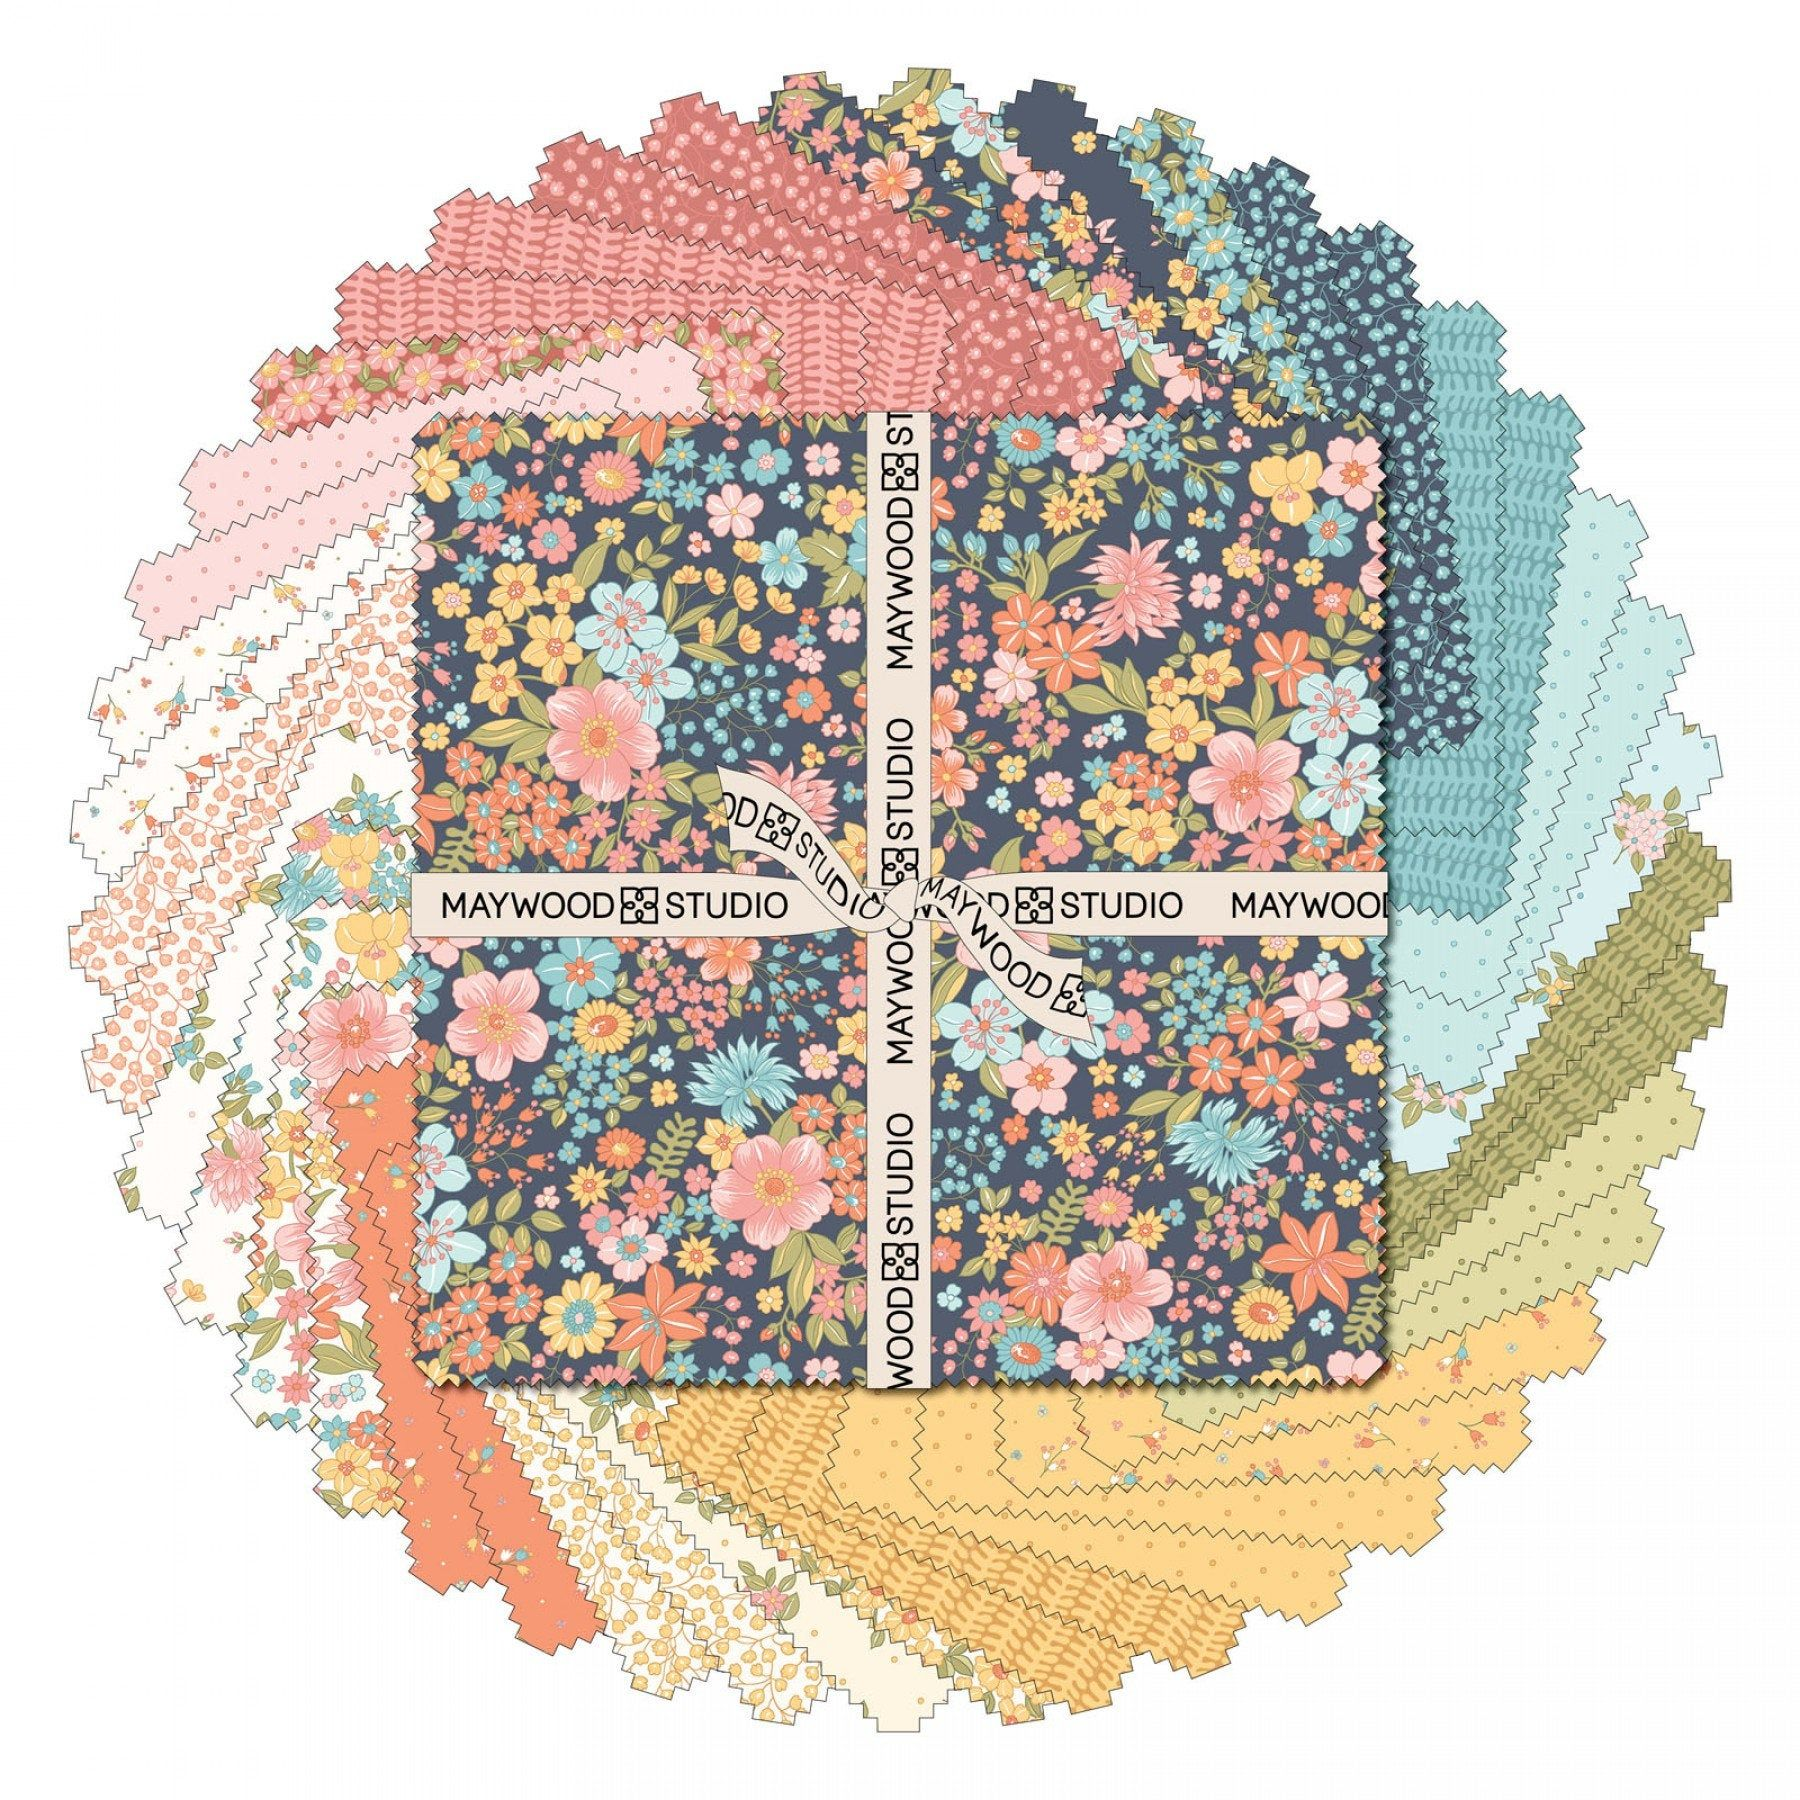 Sunlit Blooms Layer Cake Sq Massub Blue Pink Green Yellow Floral Layer Cake Fabric 10 Inch Precut Fabric Squares Maywood Studio In 2020 Precut Fabric Squares Fabric Squares Quilt Shop